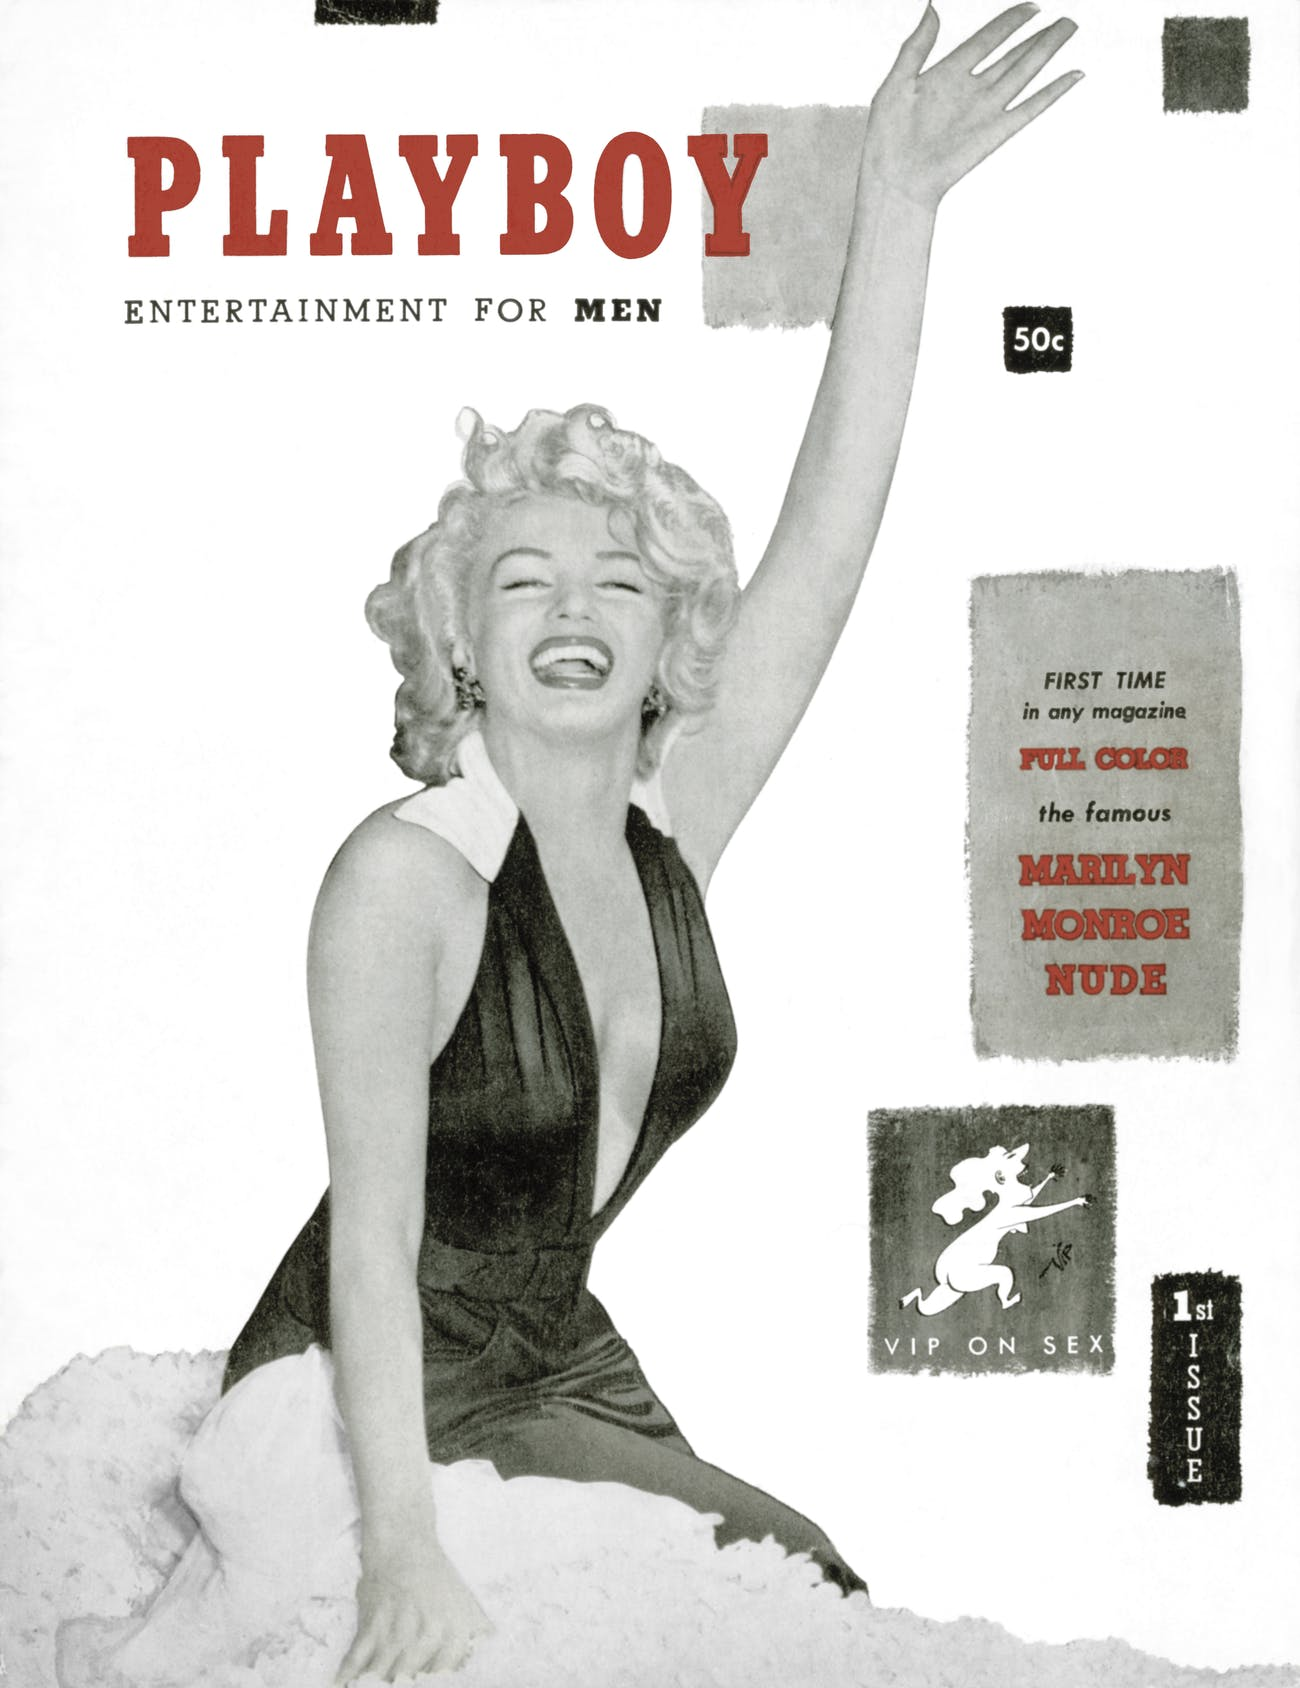 The first issue of Playboy.